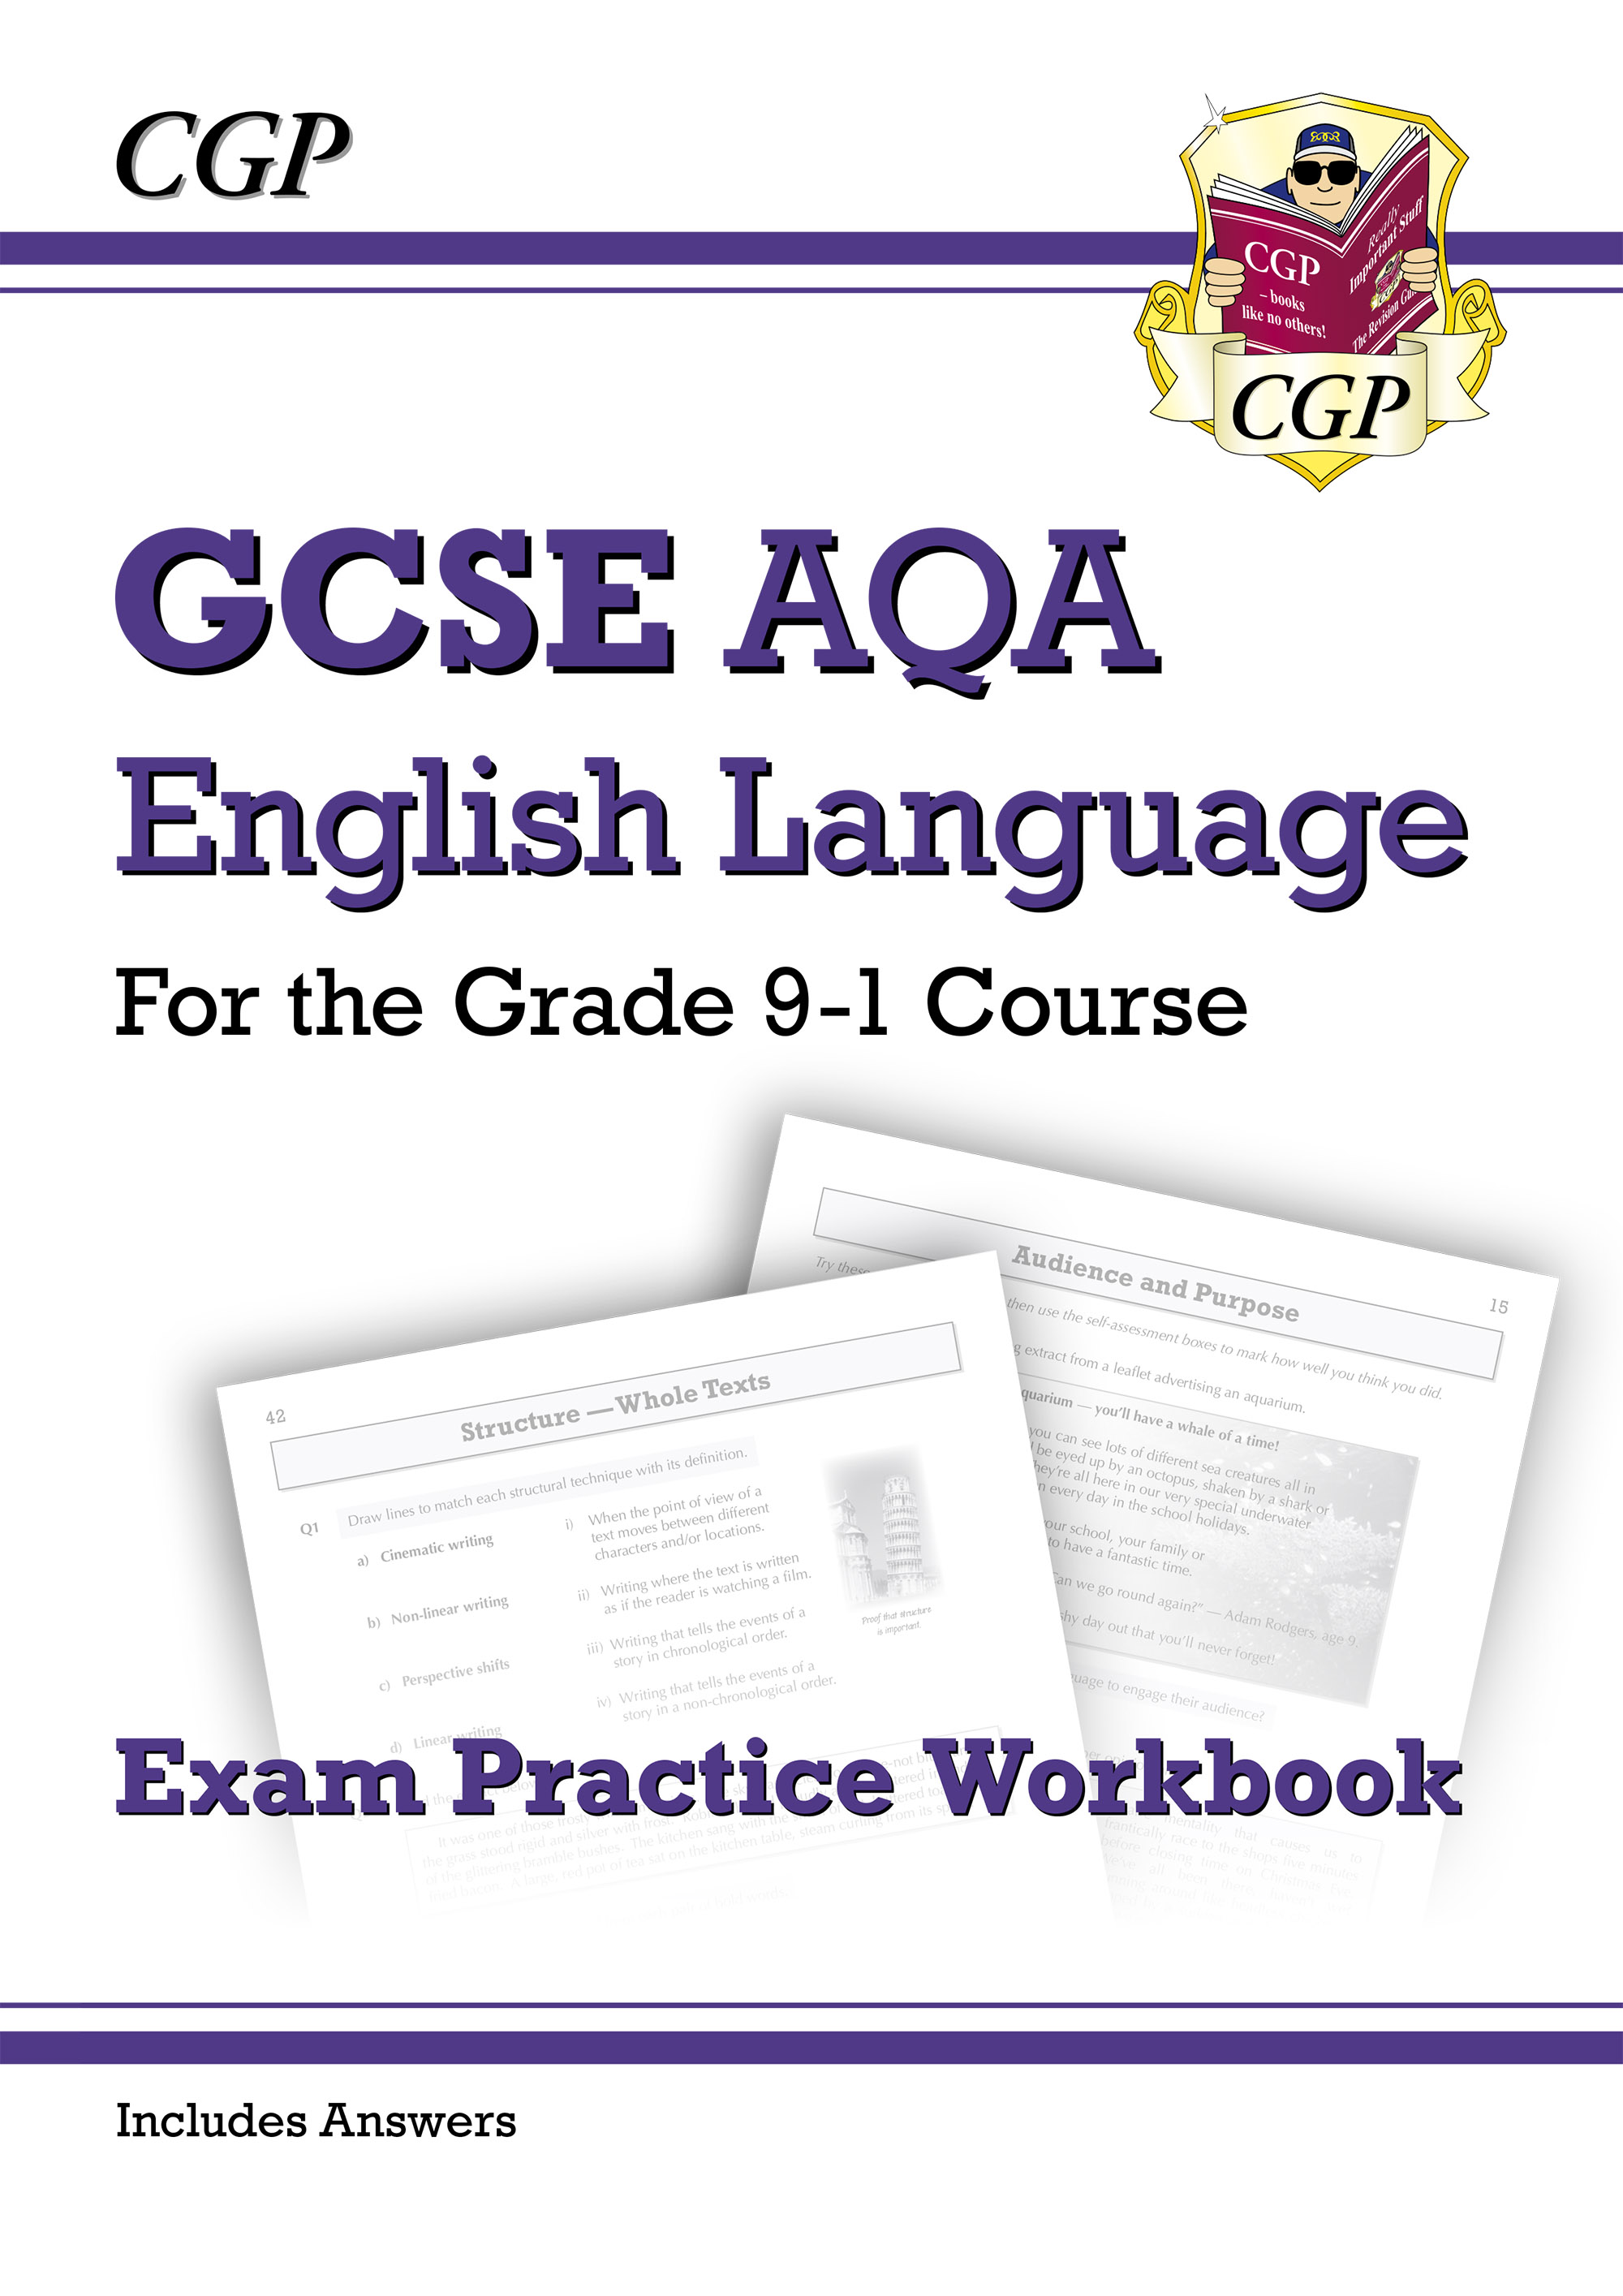 ENAW41DK - GCSE English Language AQA Workbook - for the Grade 9-1 Course (includes Answers)